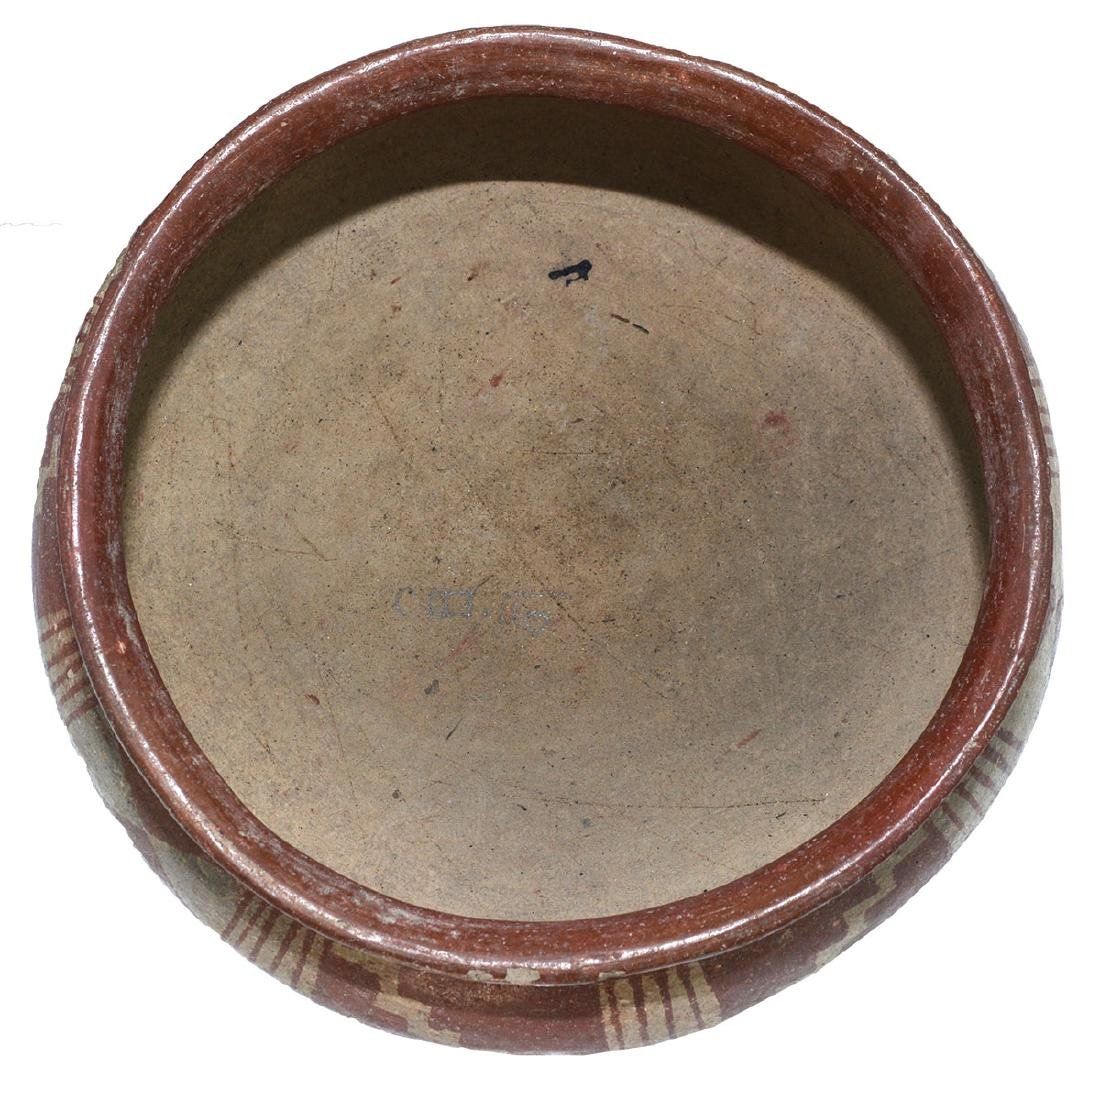 "9 3/8"" D.  Pre-Columbian Bowl with geometric designs. - 4"